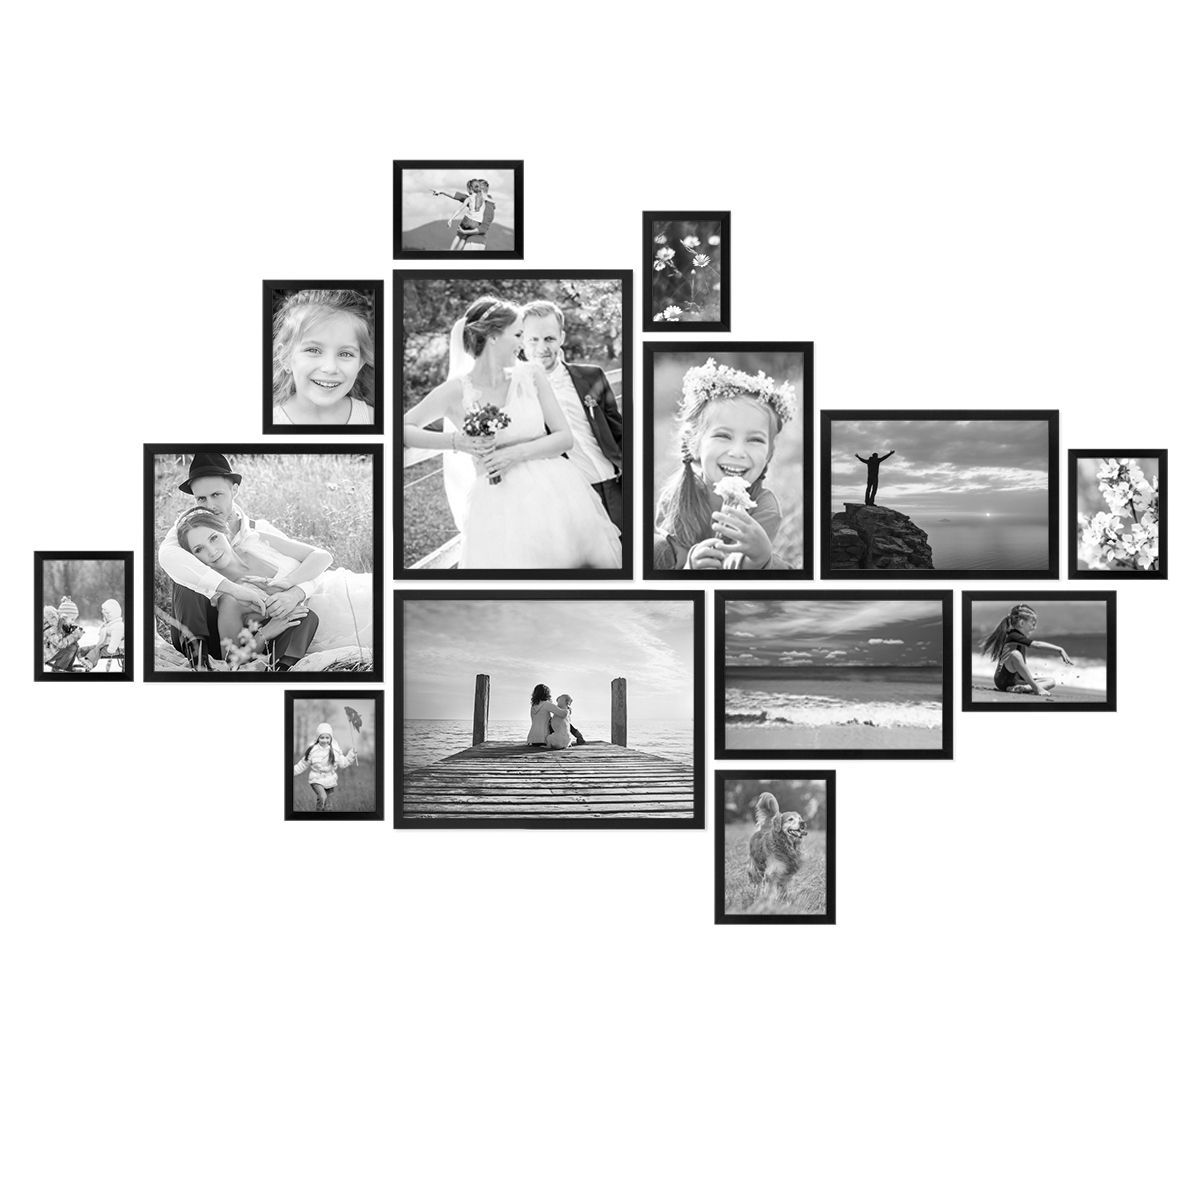 14 Piece Picture Frame Set Modern Black Made Of Mdf 10x15 To 30x40 Cm Picture Gallery Picture Wall Pi In 2020 Gallery Wall Layout Picture Collage Wall Wall Collage